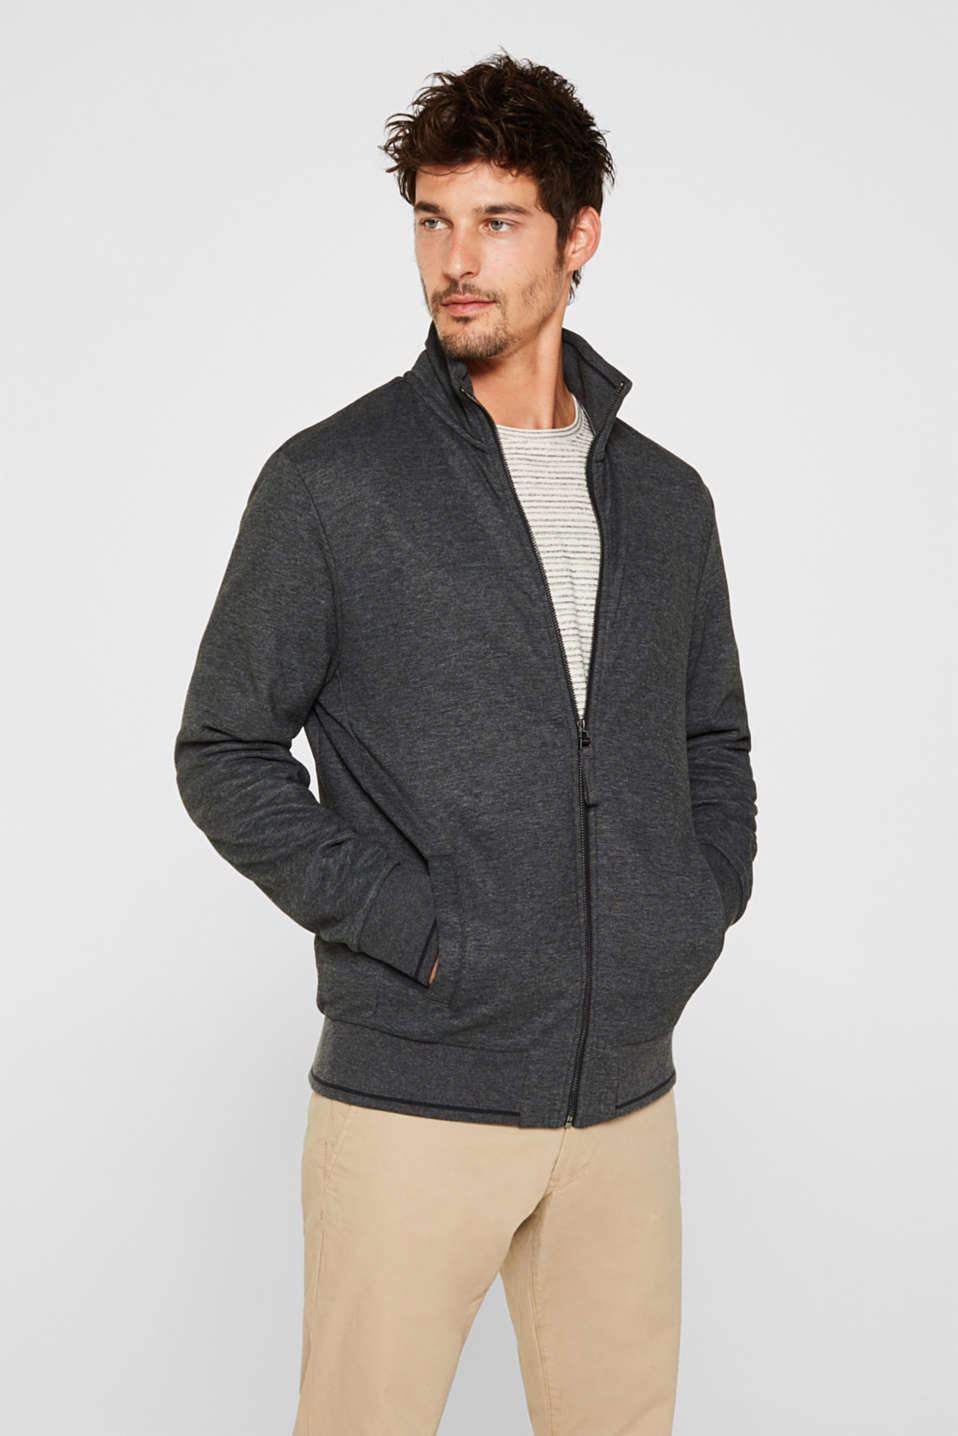 Esprit - Cotton blend sweatshirt cardigan